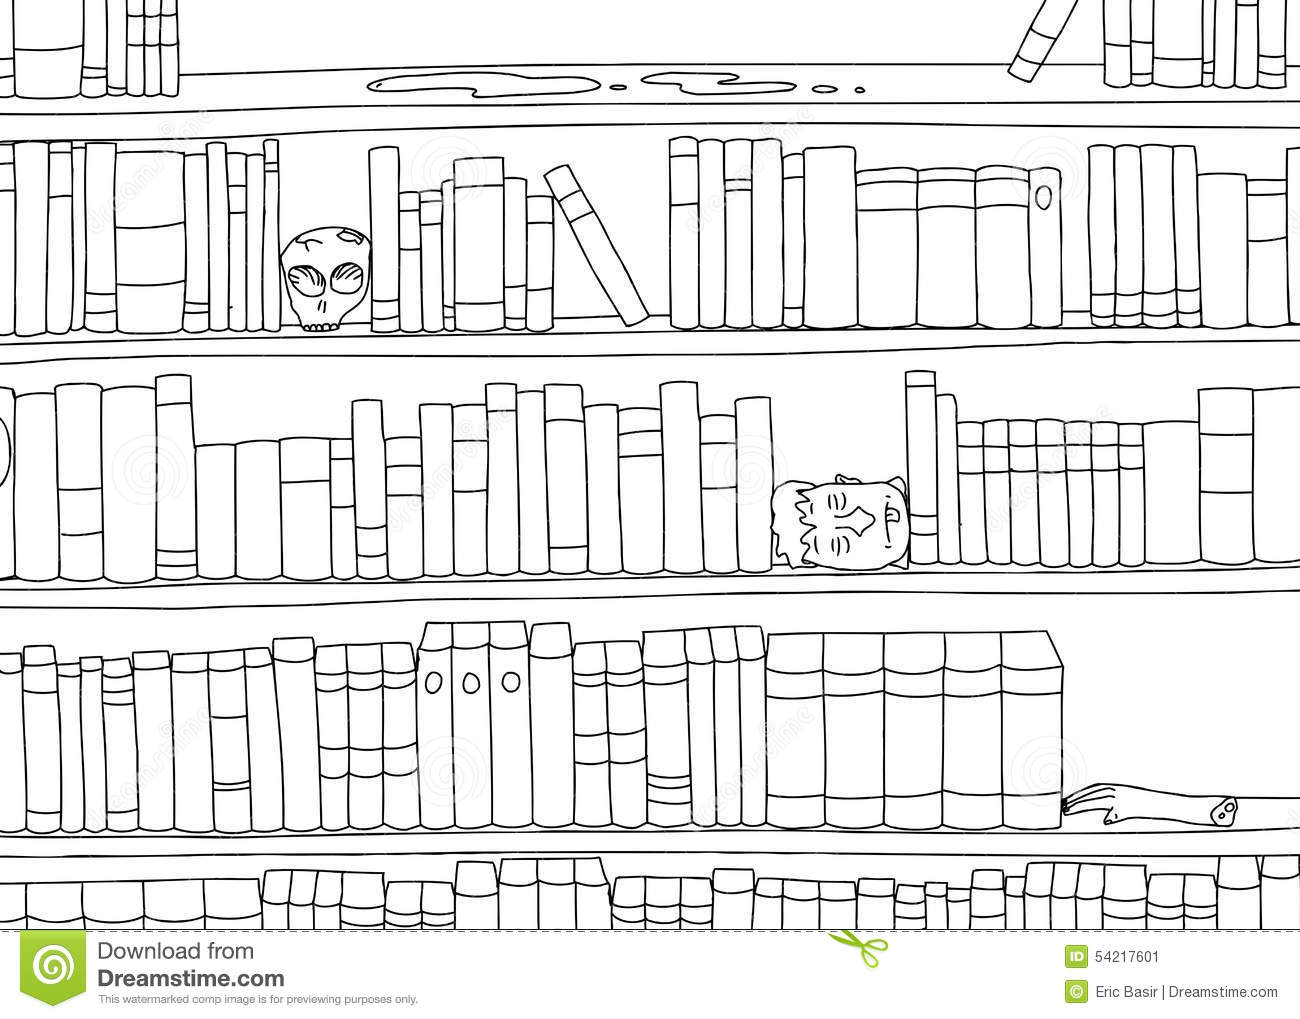 Outline Of Bizarre Bookshelf Stock Illustration